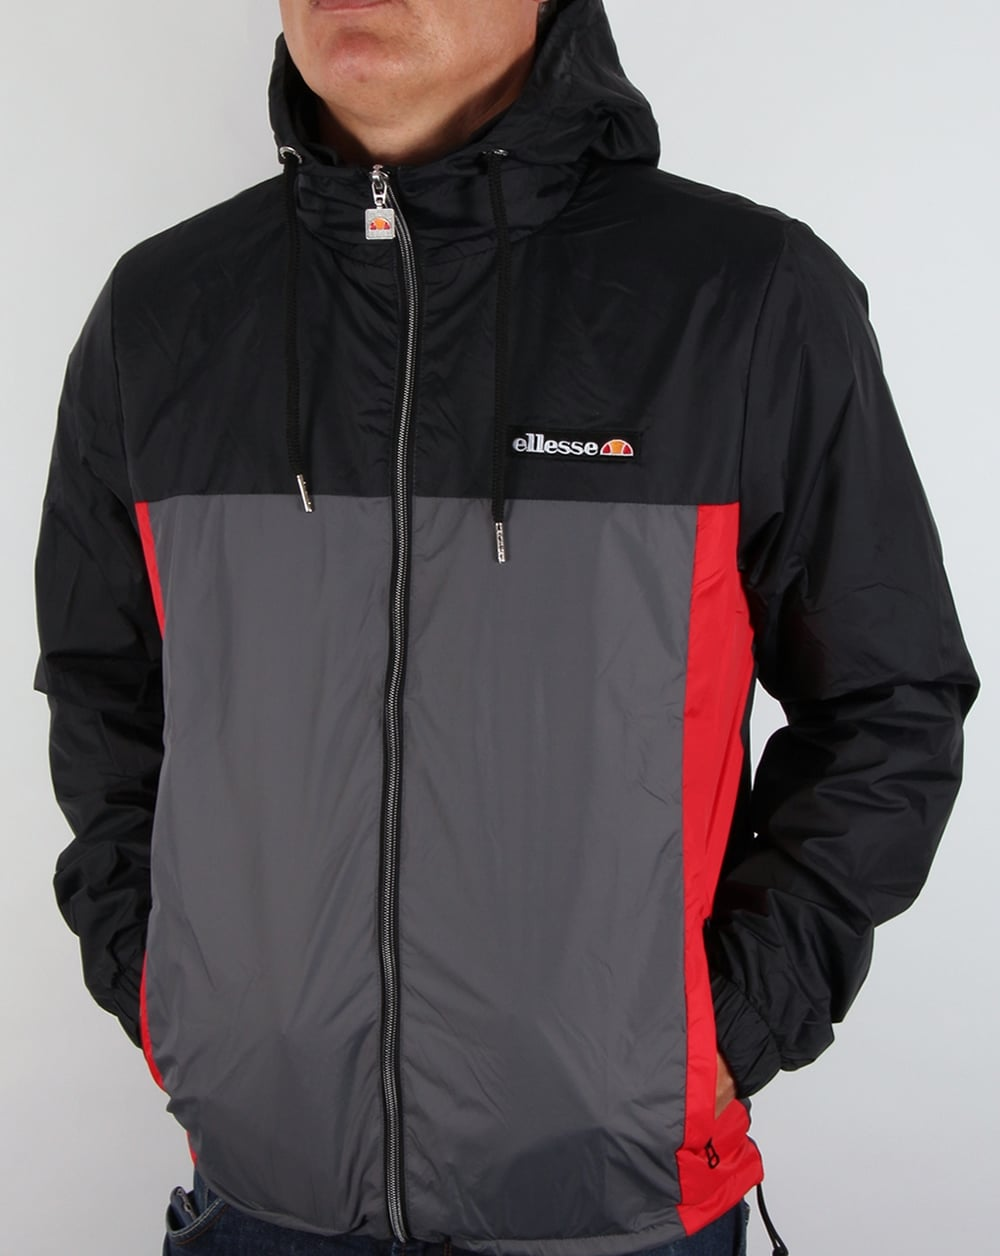 ellesse herens jacket black grey red rain windcheater coat mens. Black Bedroom Furniture Sets. Home Design Ideas